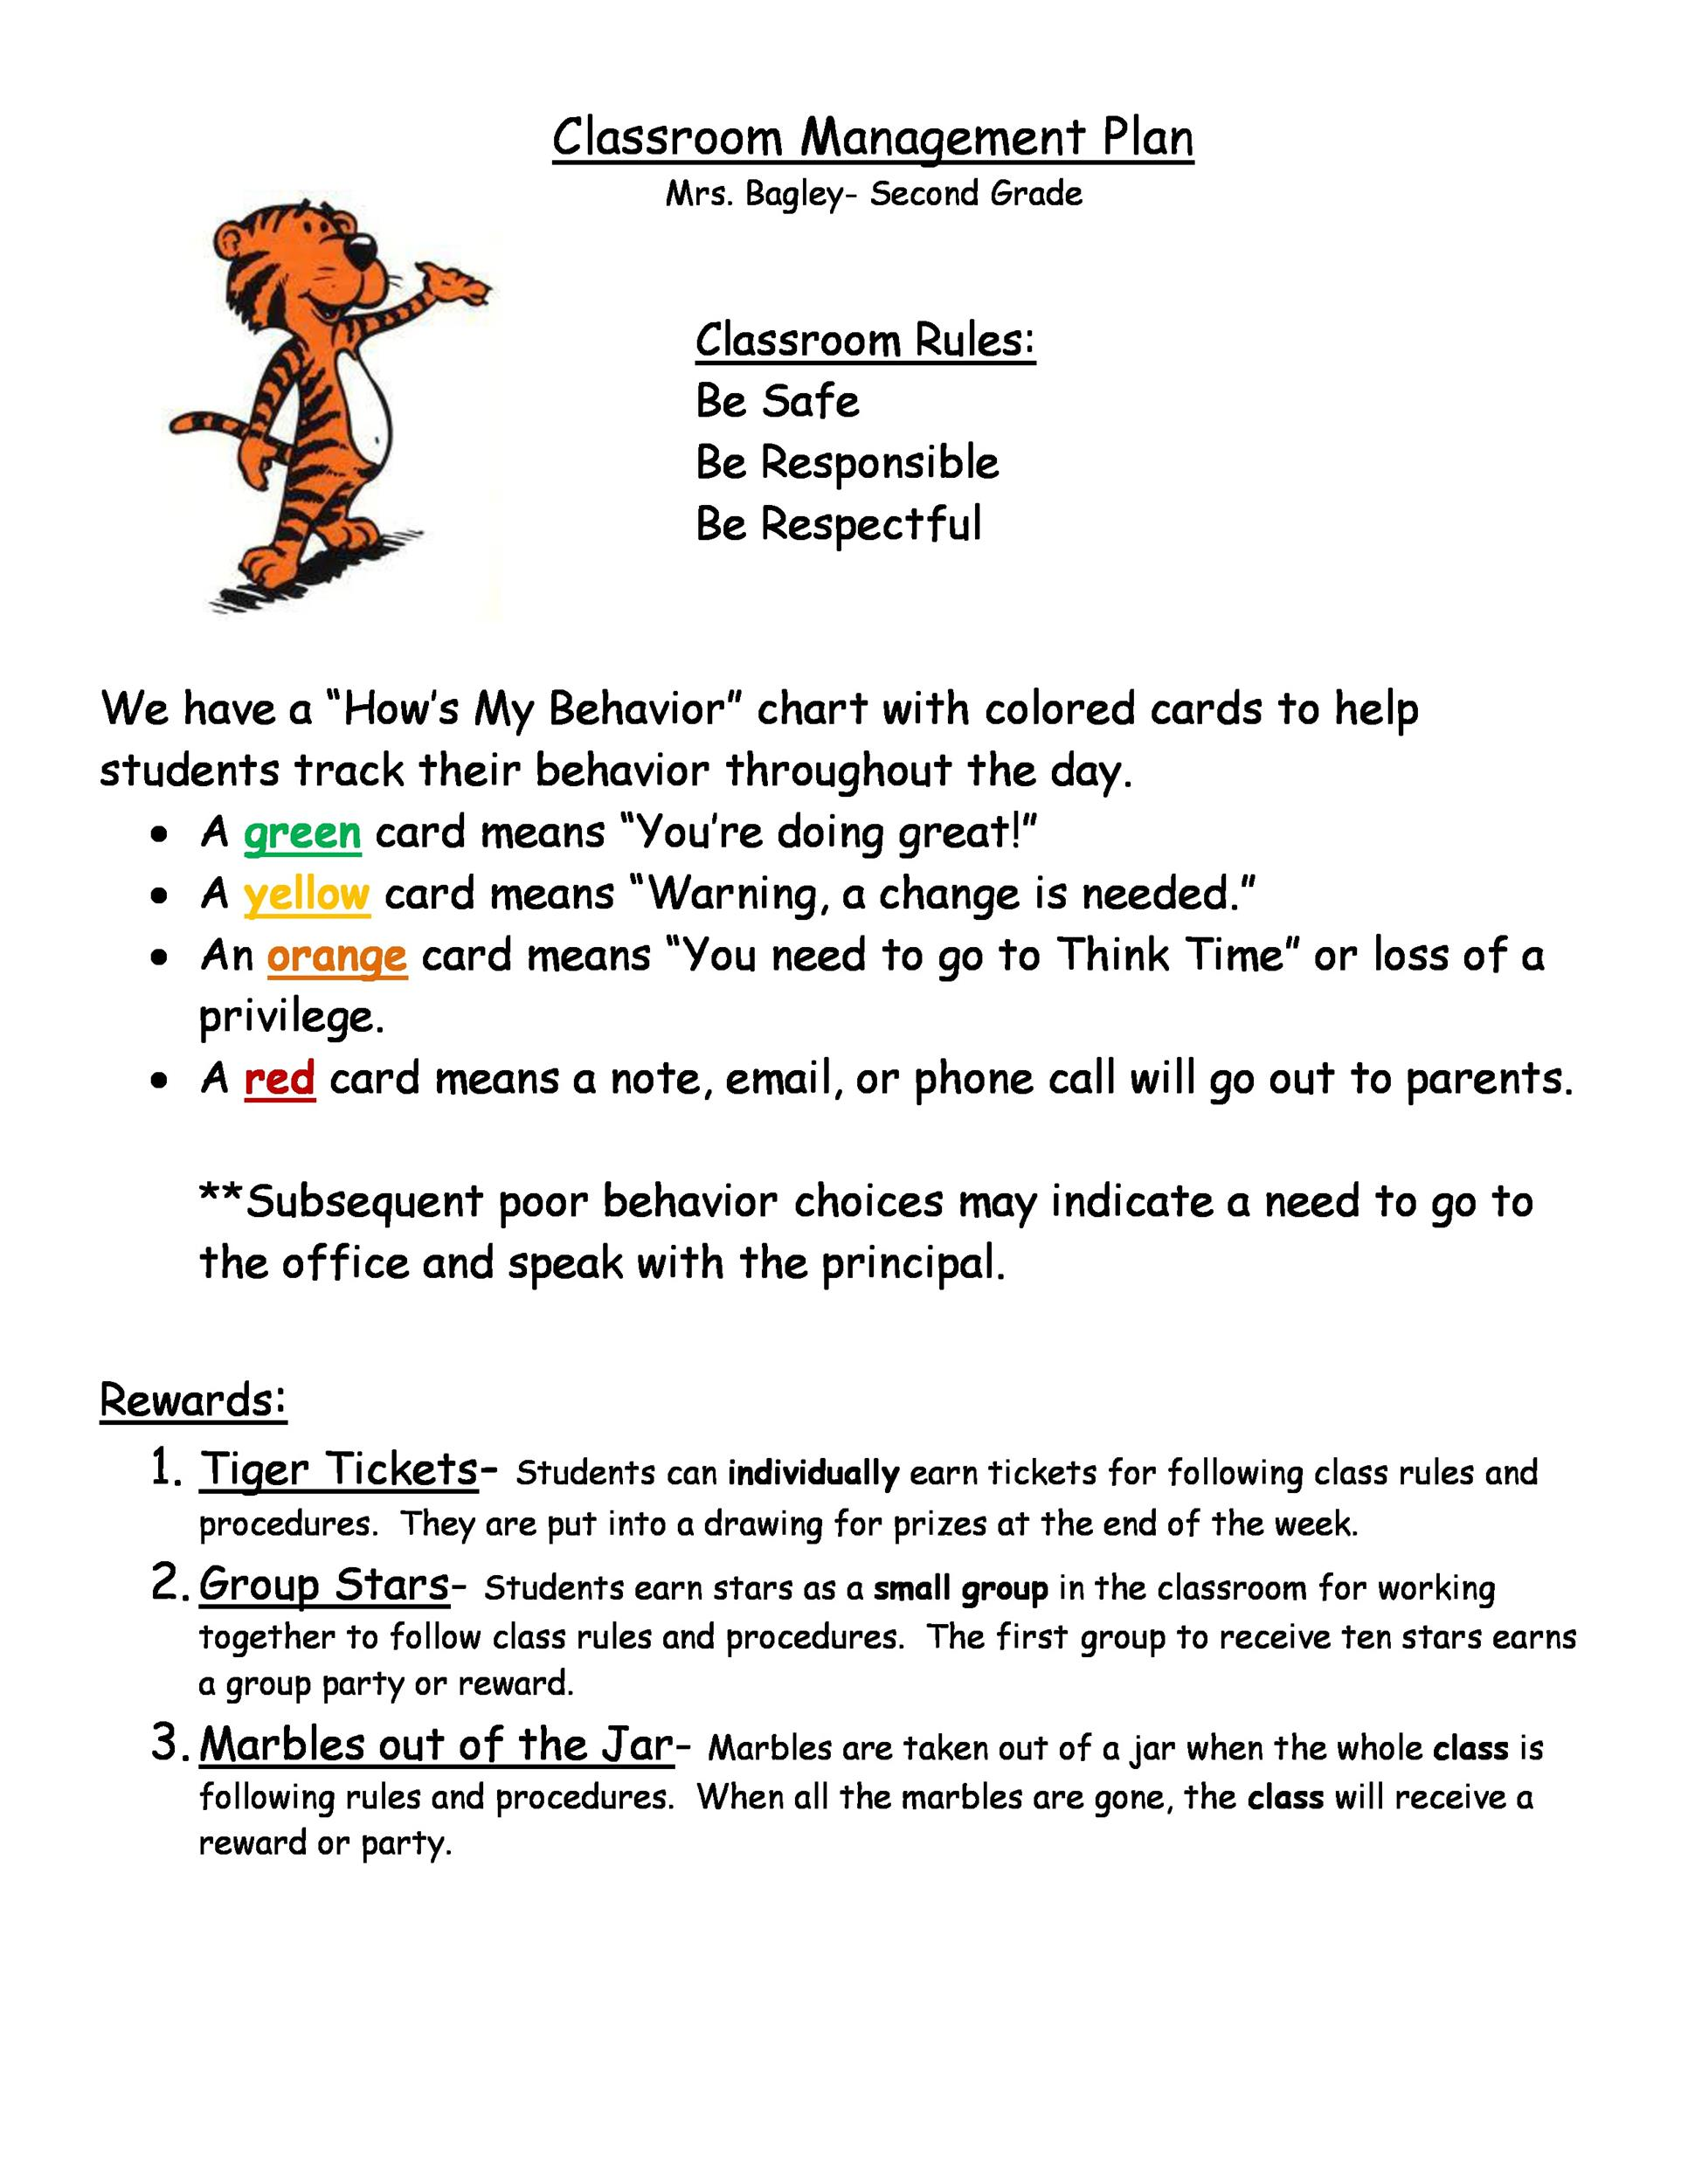 Free classroom management plan 21